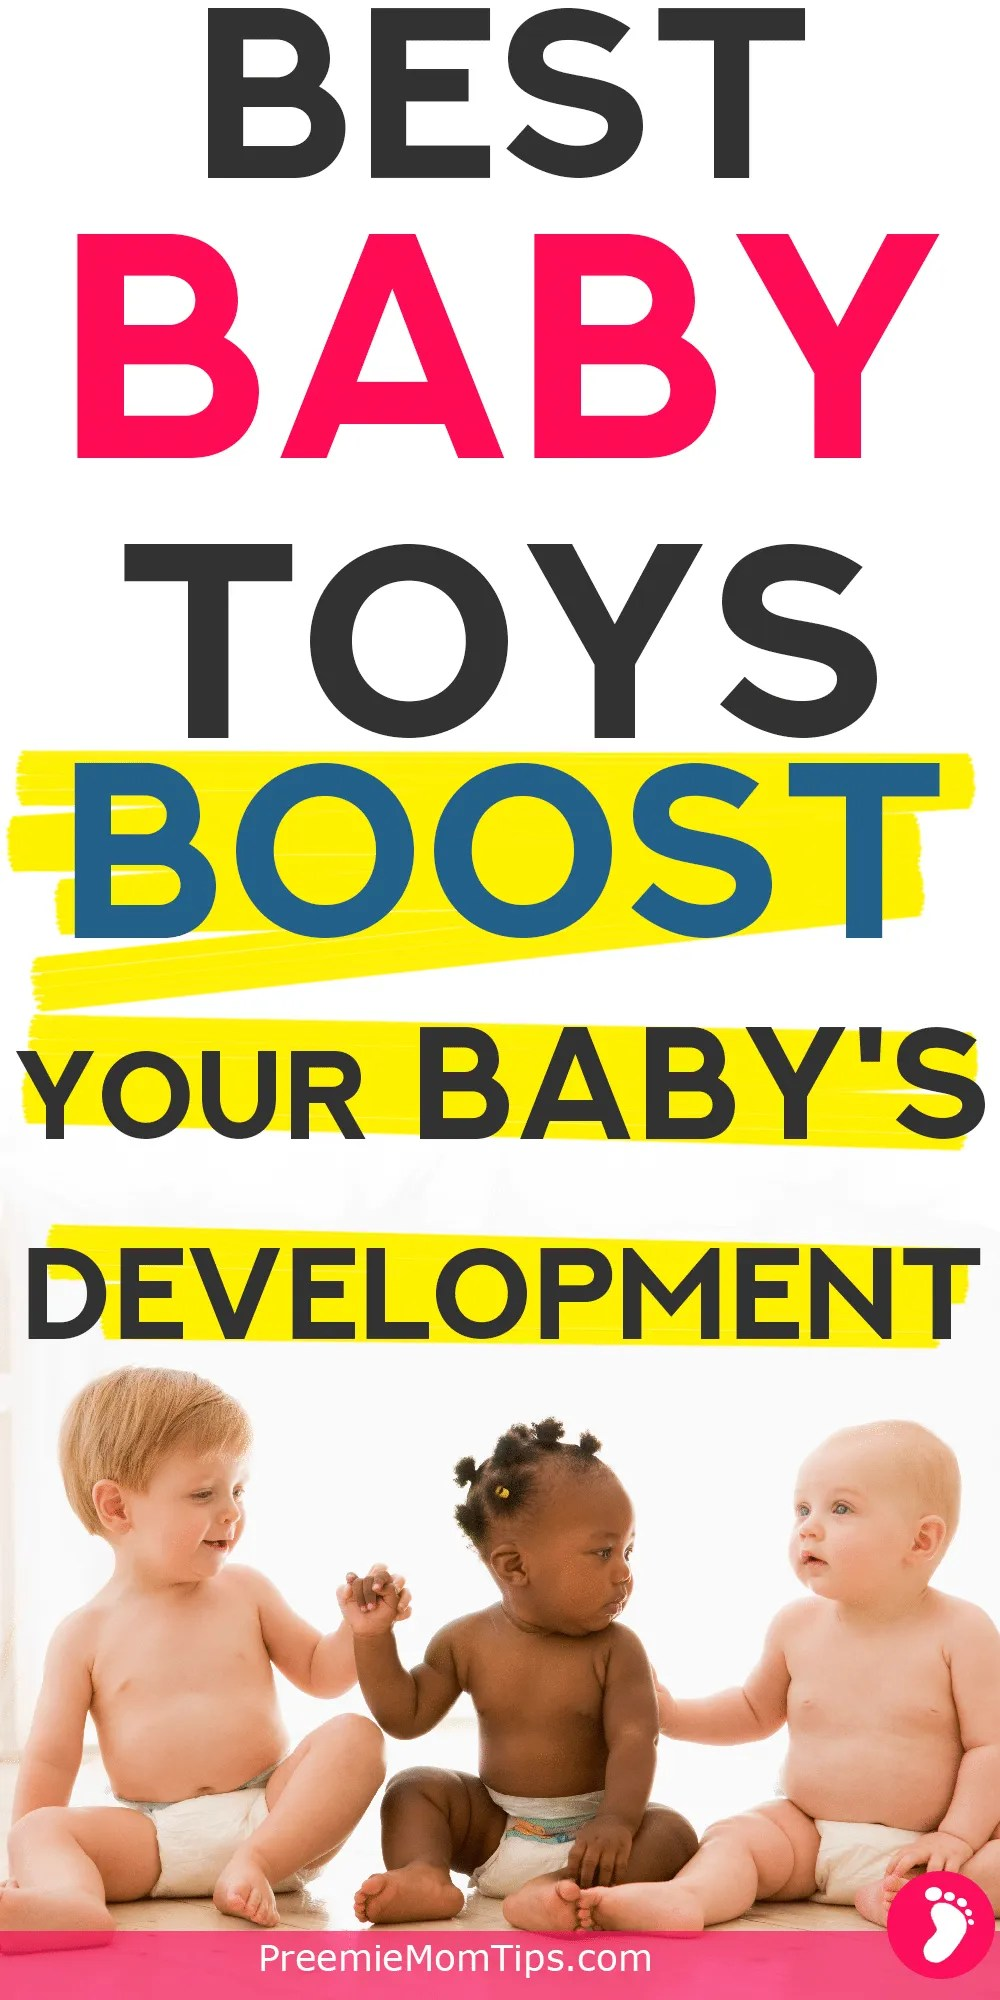 Check out the best baby toys for development every mom should get during their baby's first year! Boost your baby's brain with these wonderful toys.